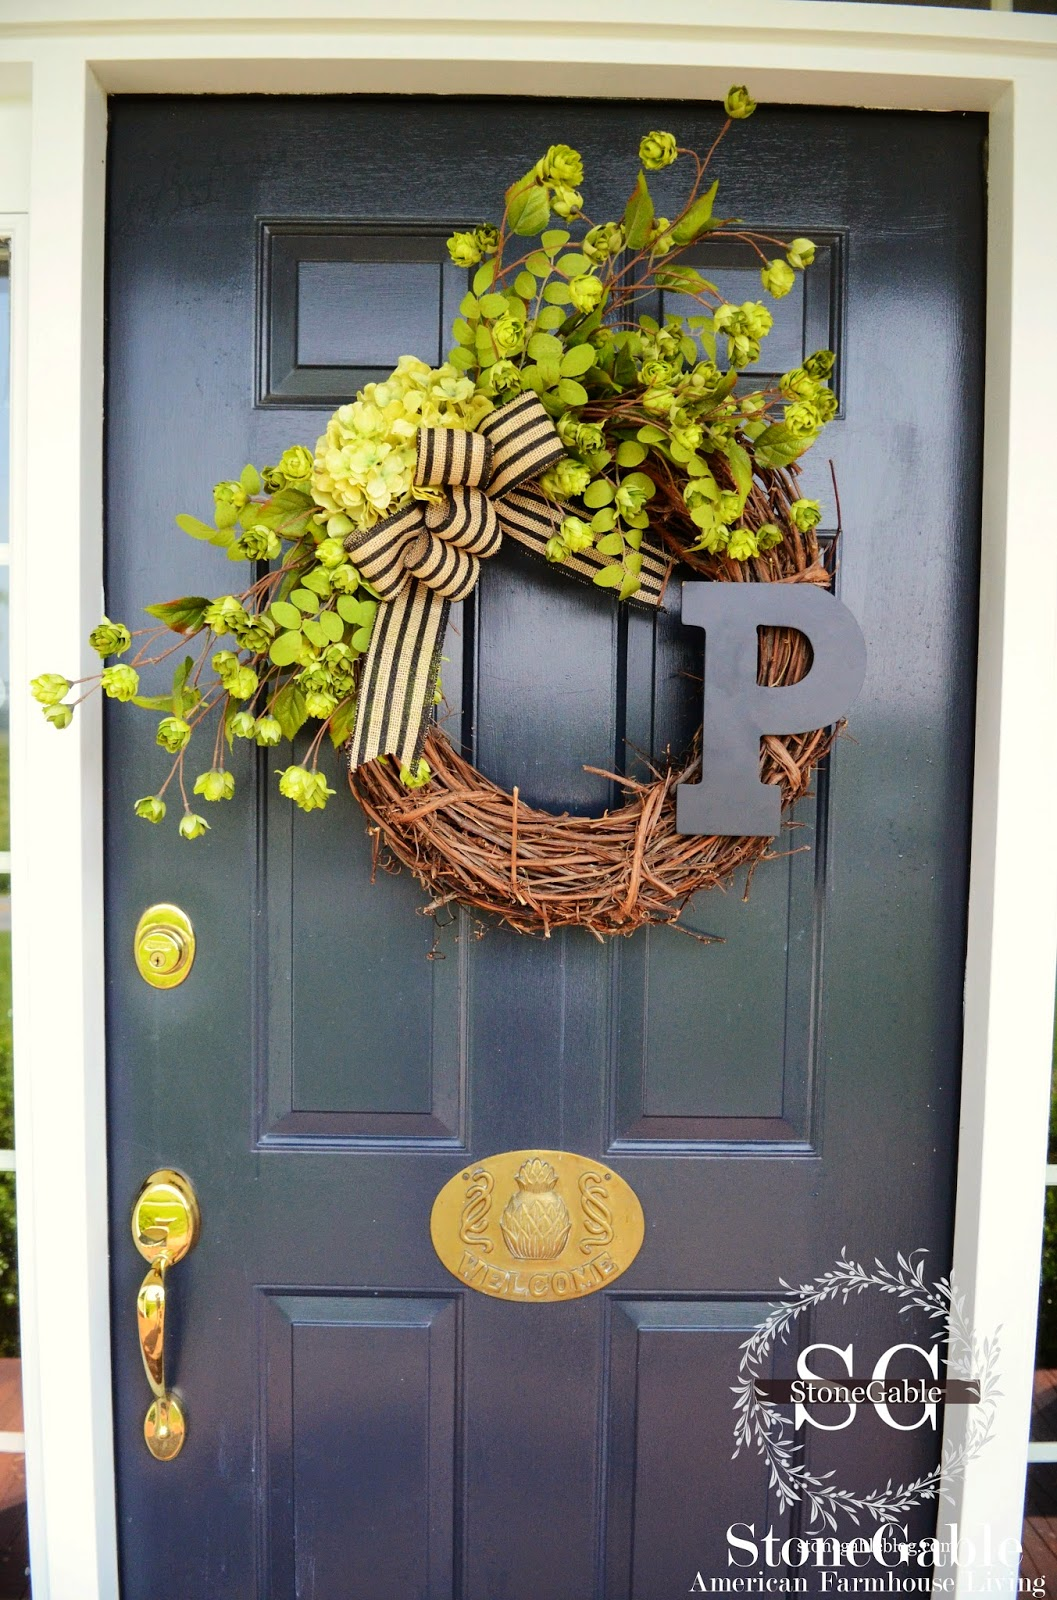 Now thatu0027s a wreath that singsu2026 WELCOME! & SUMMER INITIAL WREATH DIY - StoneGable pezcame.com